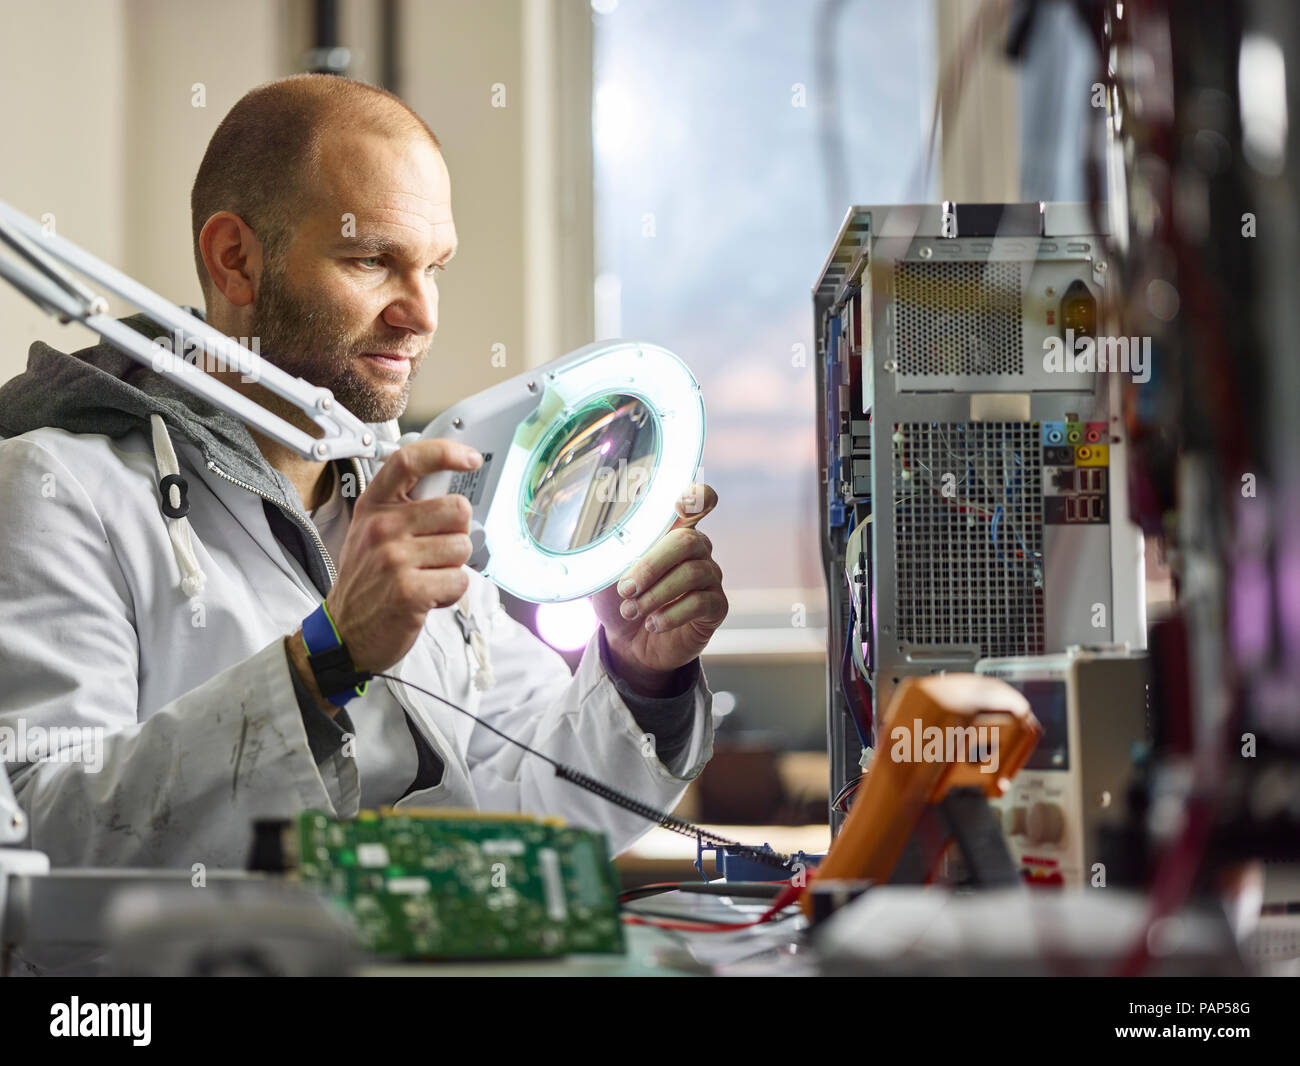 Technician working in electronic laboratory - Stock Image